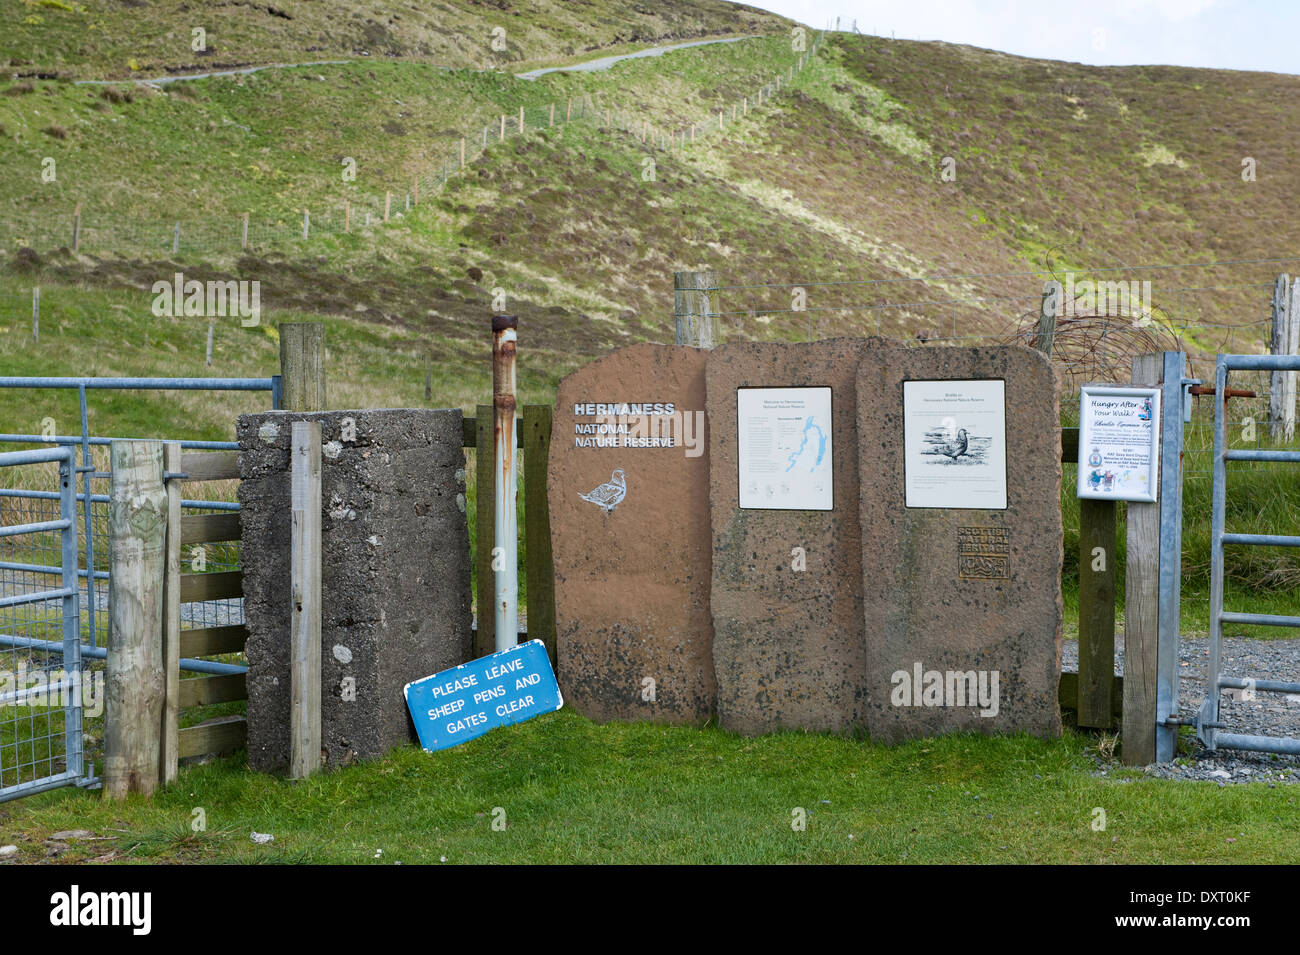 RSPB visiotrs notice board at at Hermaness NNR, Unst, Shetland Isles, Scotland, UK - Stock Image